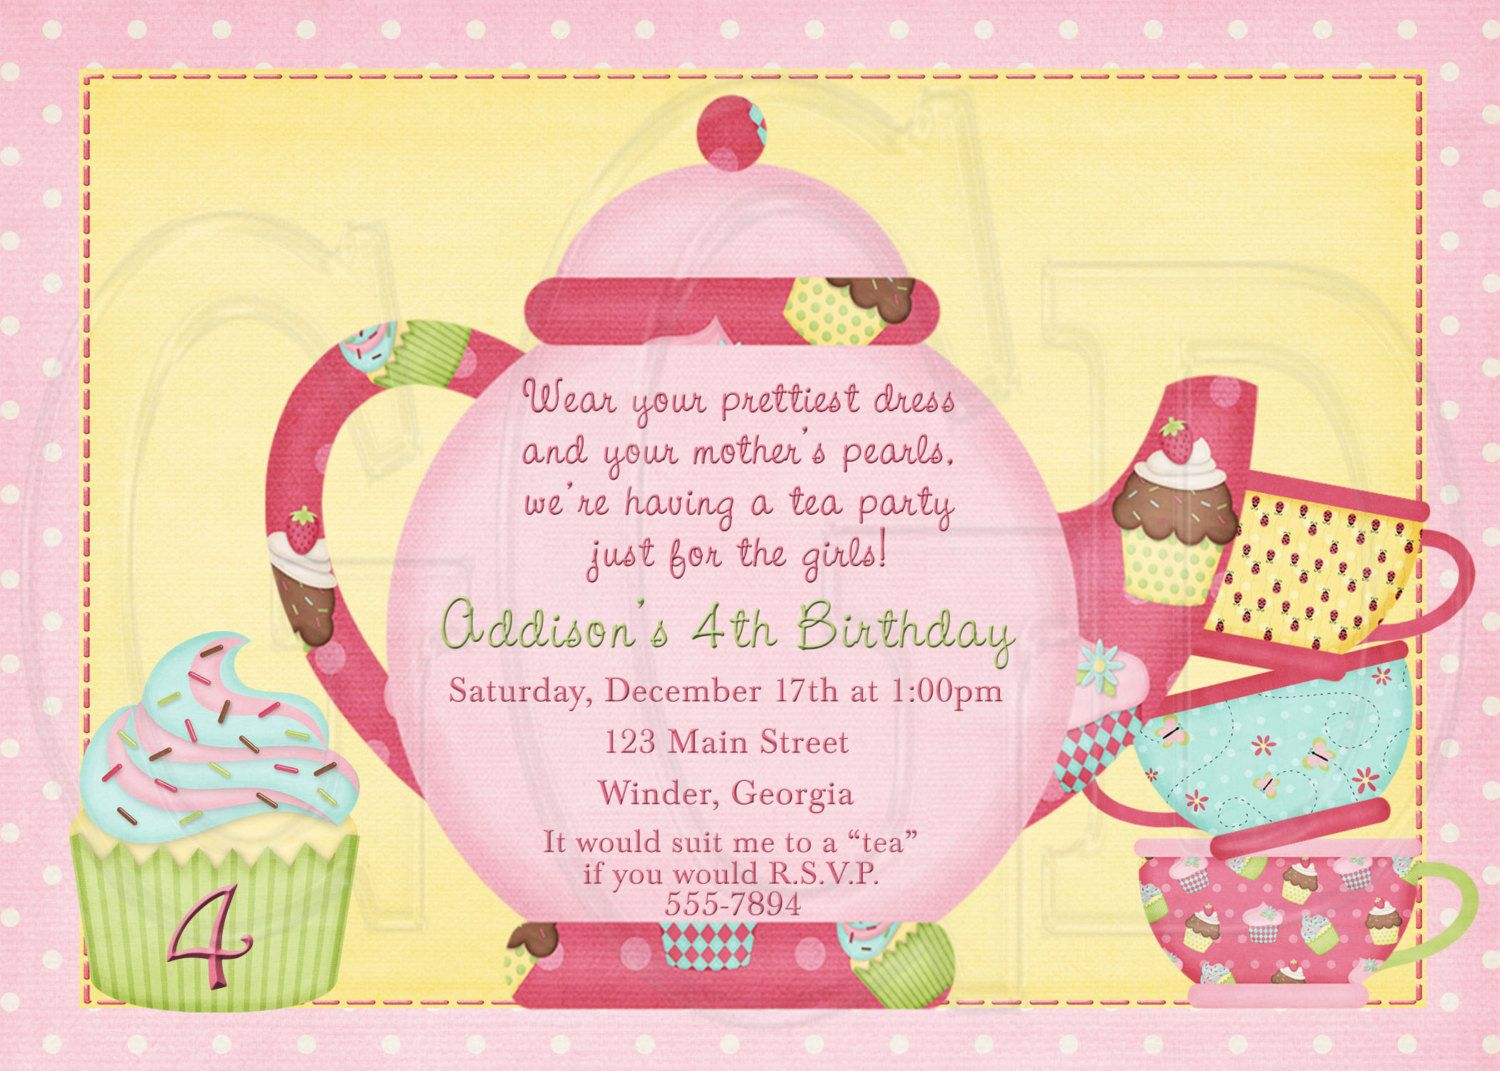 Tea party invitation birthday dress up party parties pinterest tea party invitation birthday dress up party monicamarmolfo Image collections